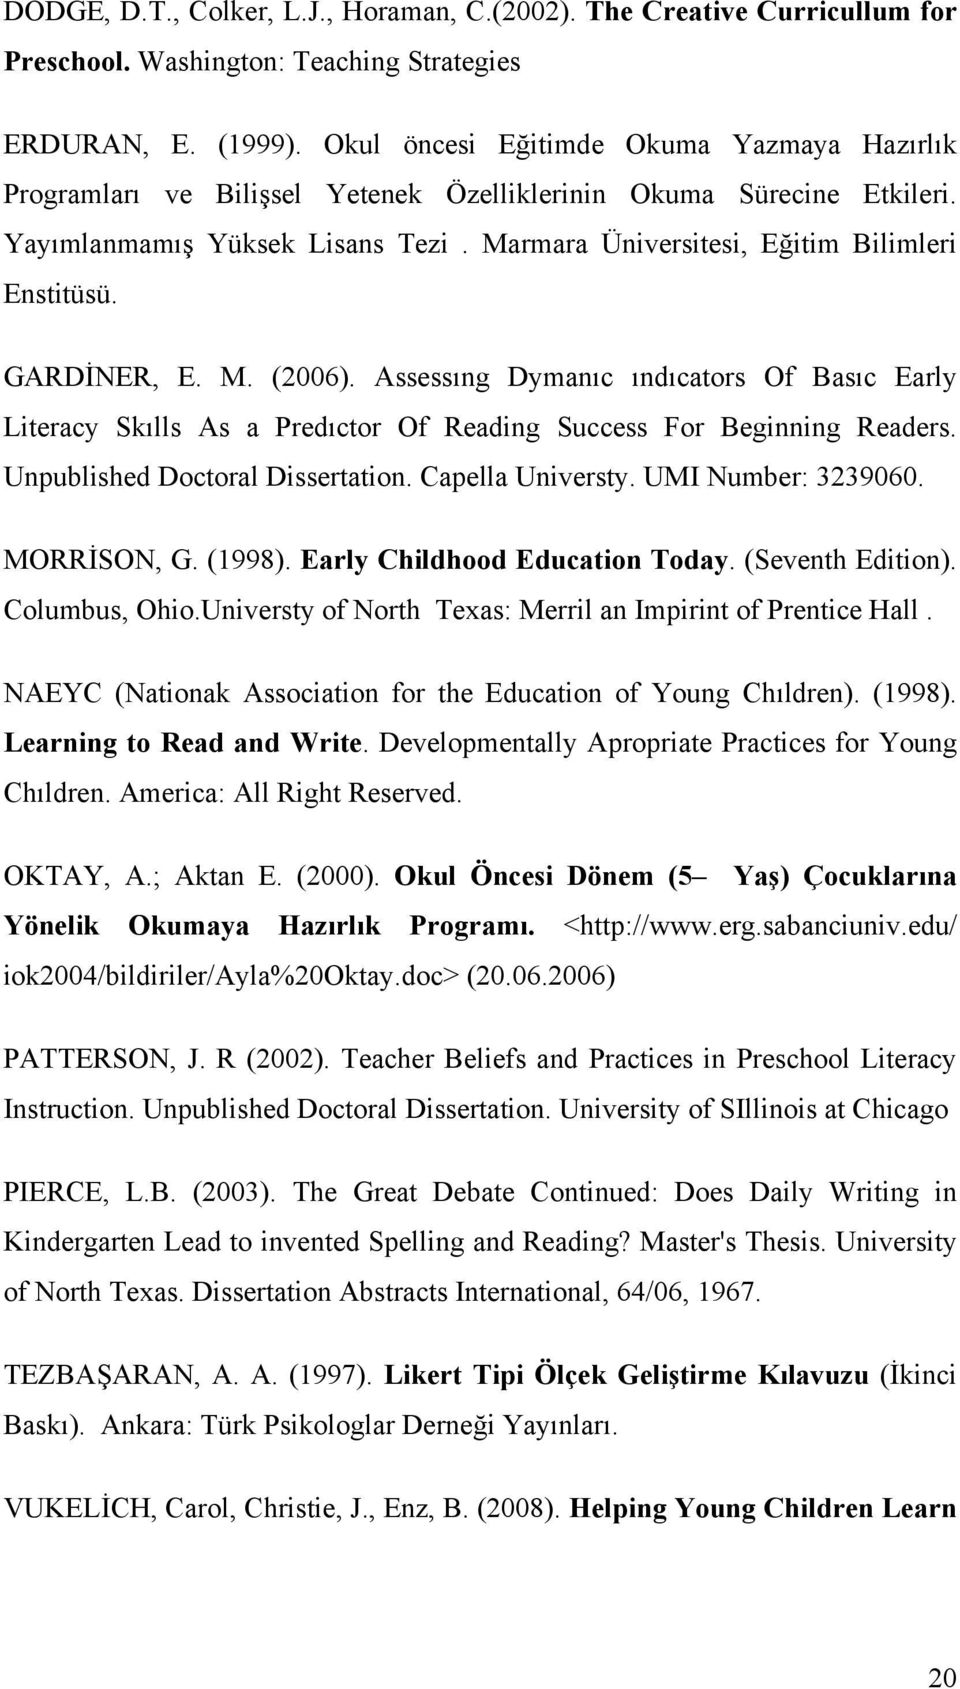 GARDİNER, E. M. (2006). Assessıng Dymanıc ındıcators Of Basıc Early Literacy Skılls As a Predıctor Of Reading Success For Beginning Readers. Unpublished Doctoral Dissertation. Capella Universty.